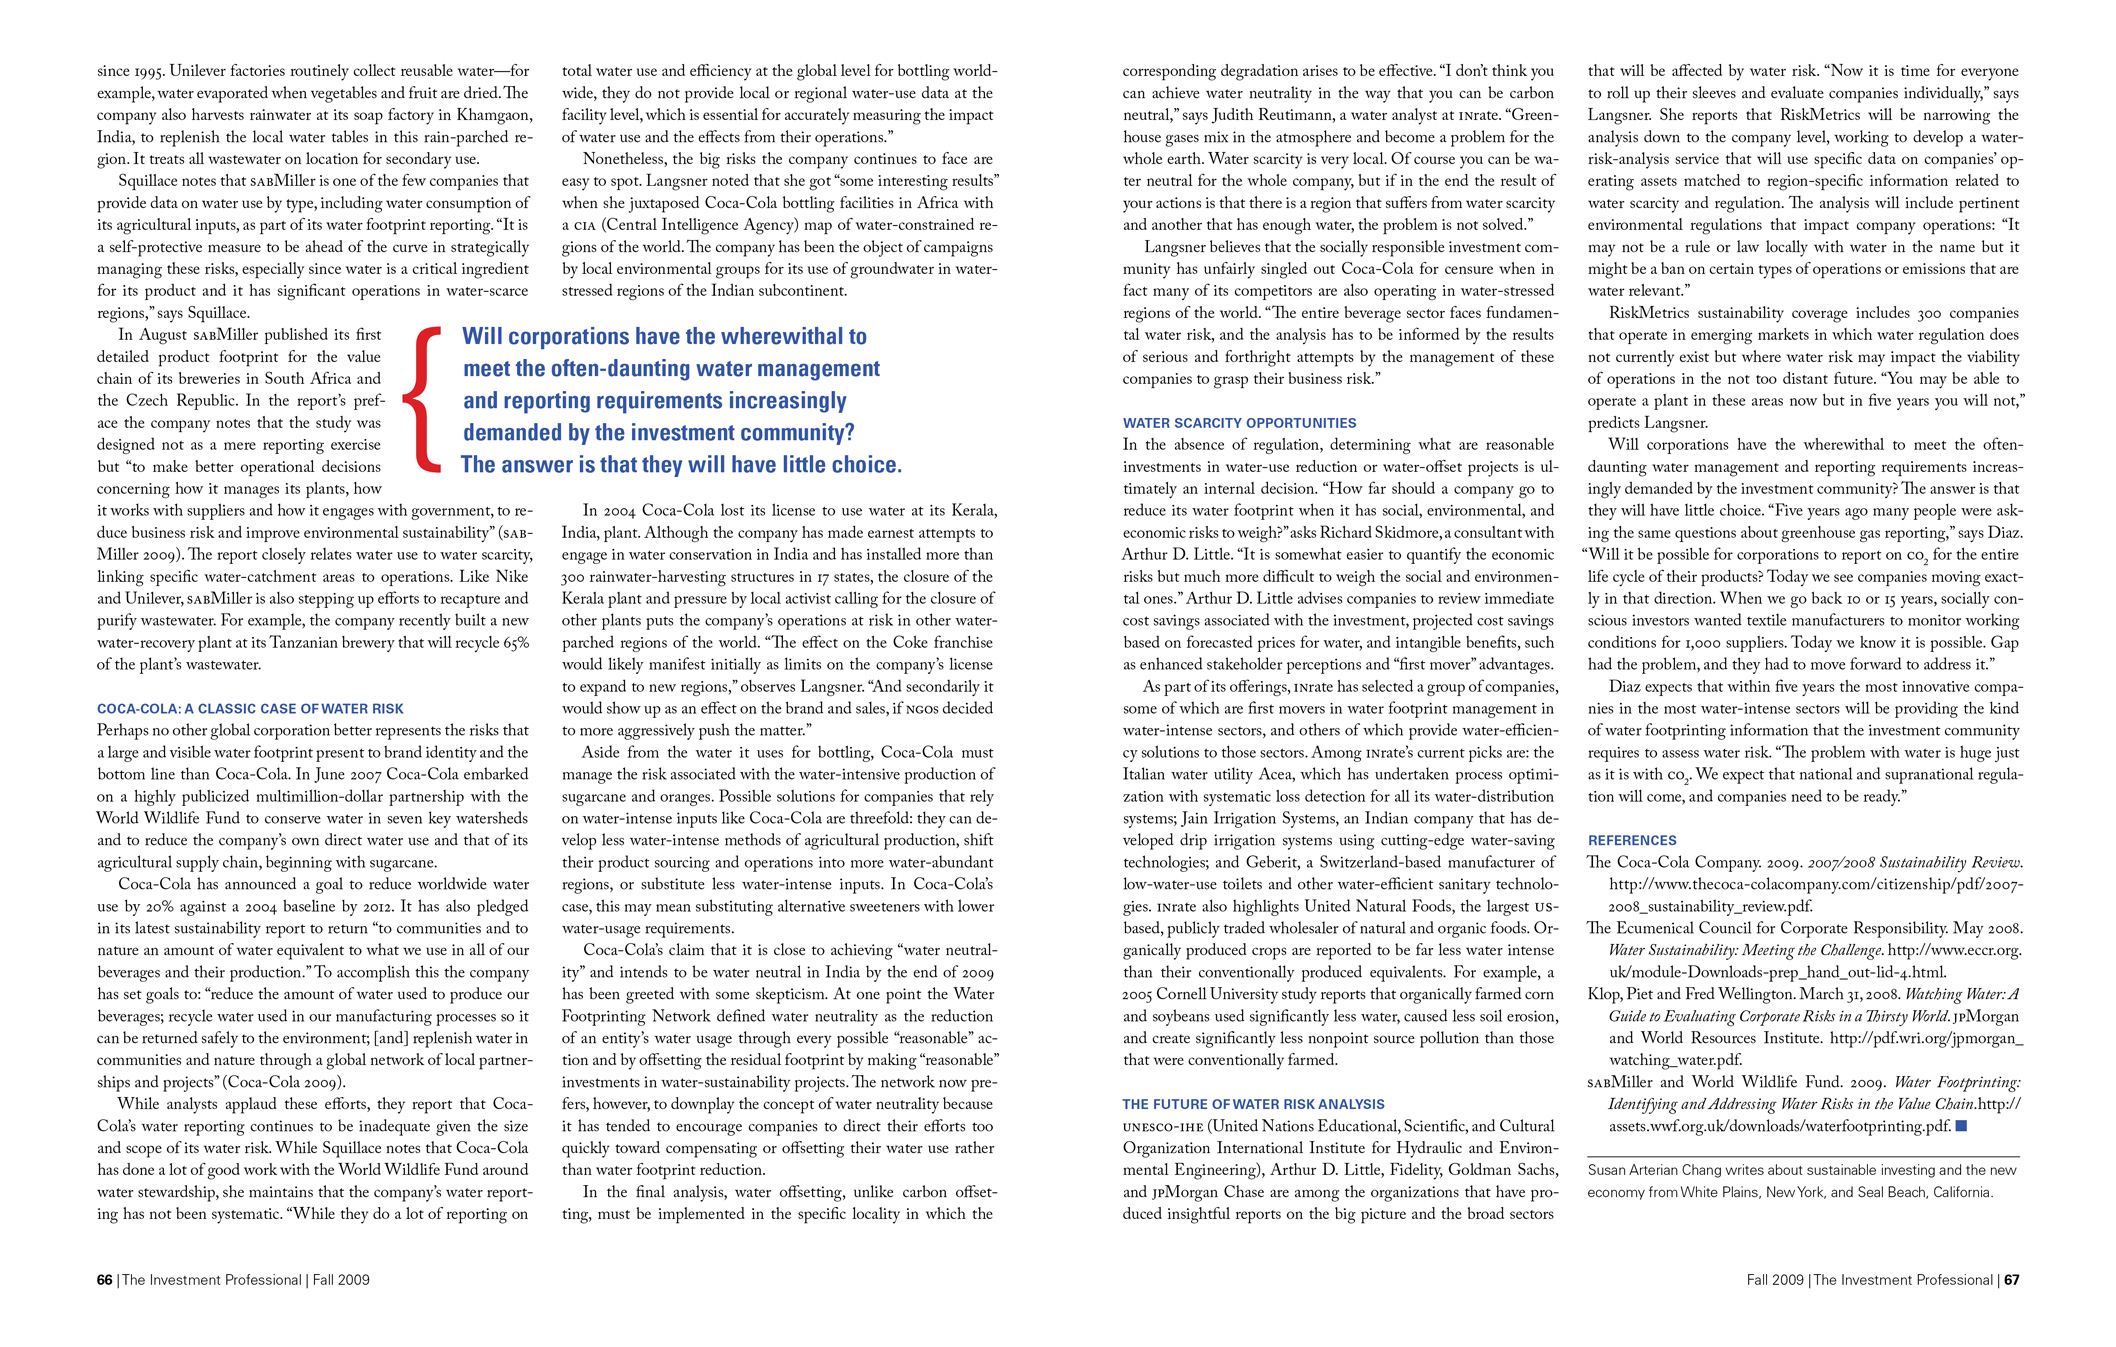 Article in The Investment Professional about the risks of impending water shortages.